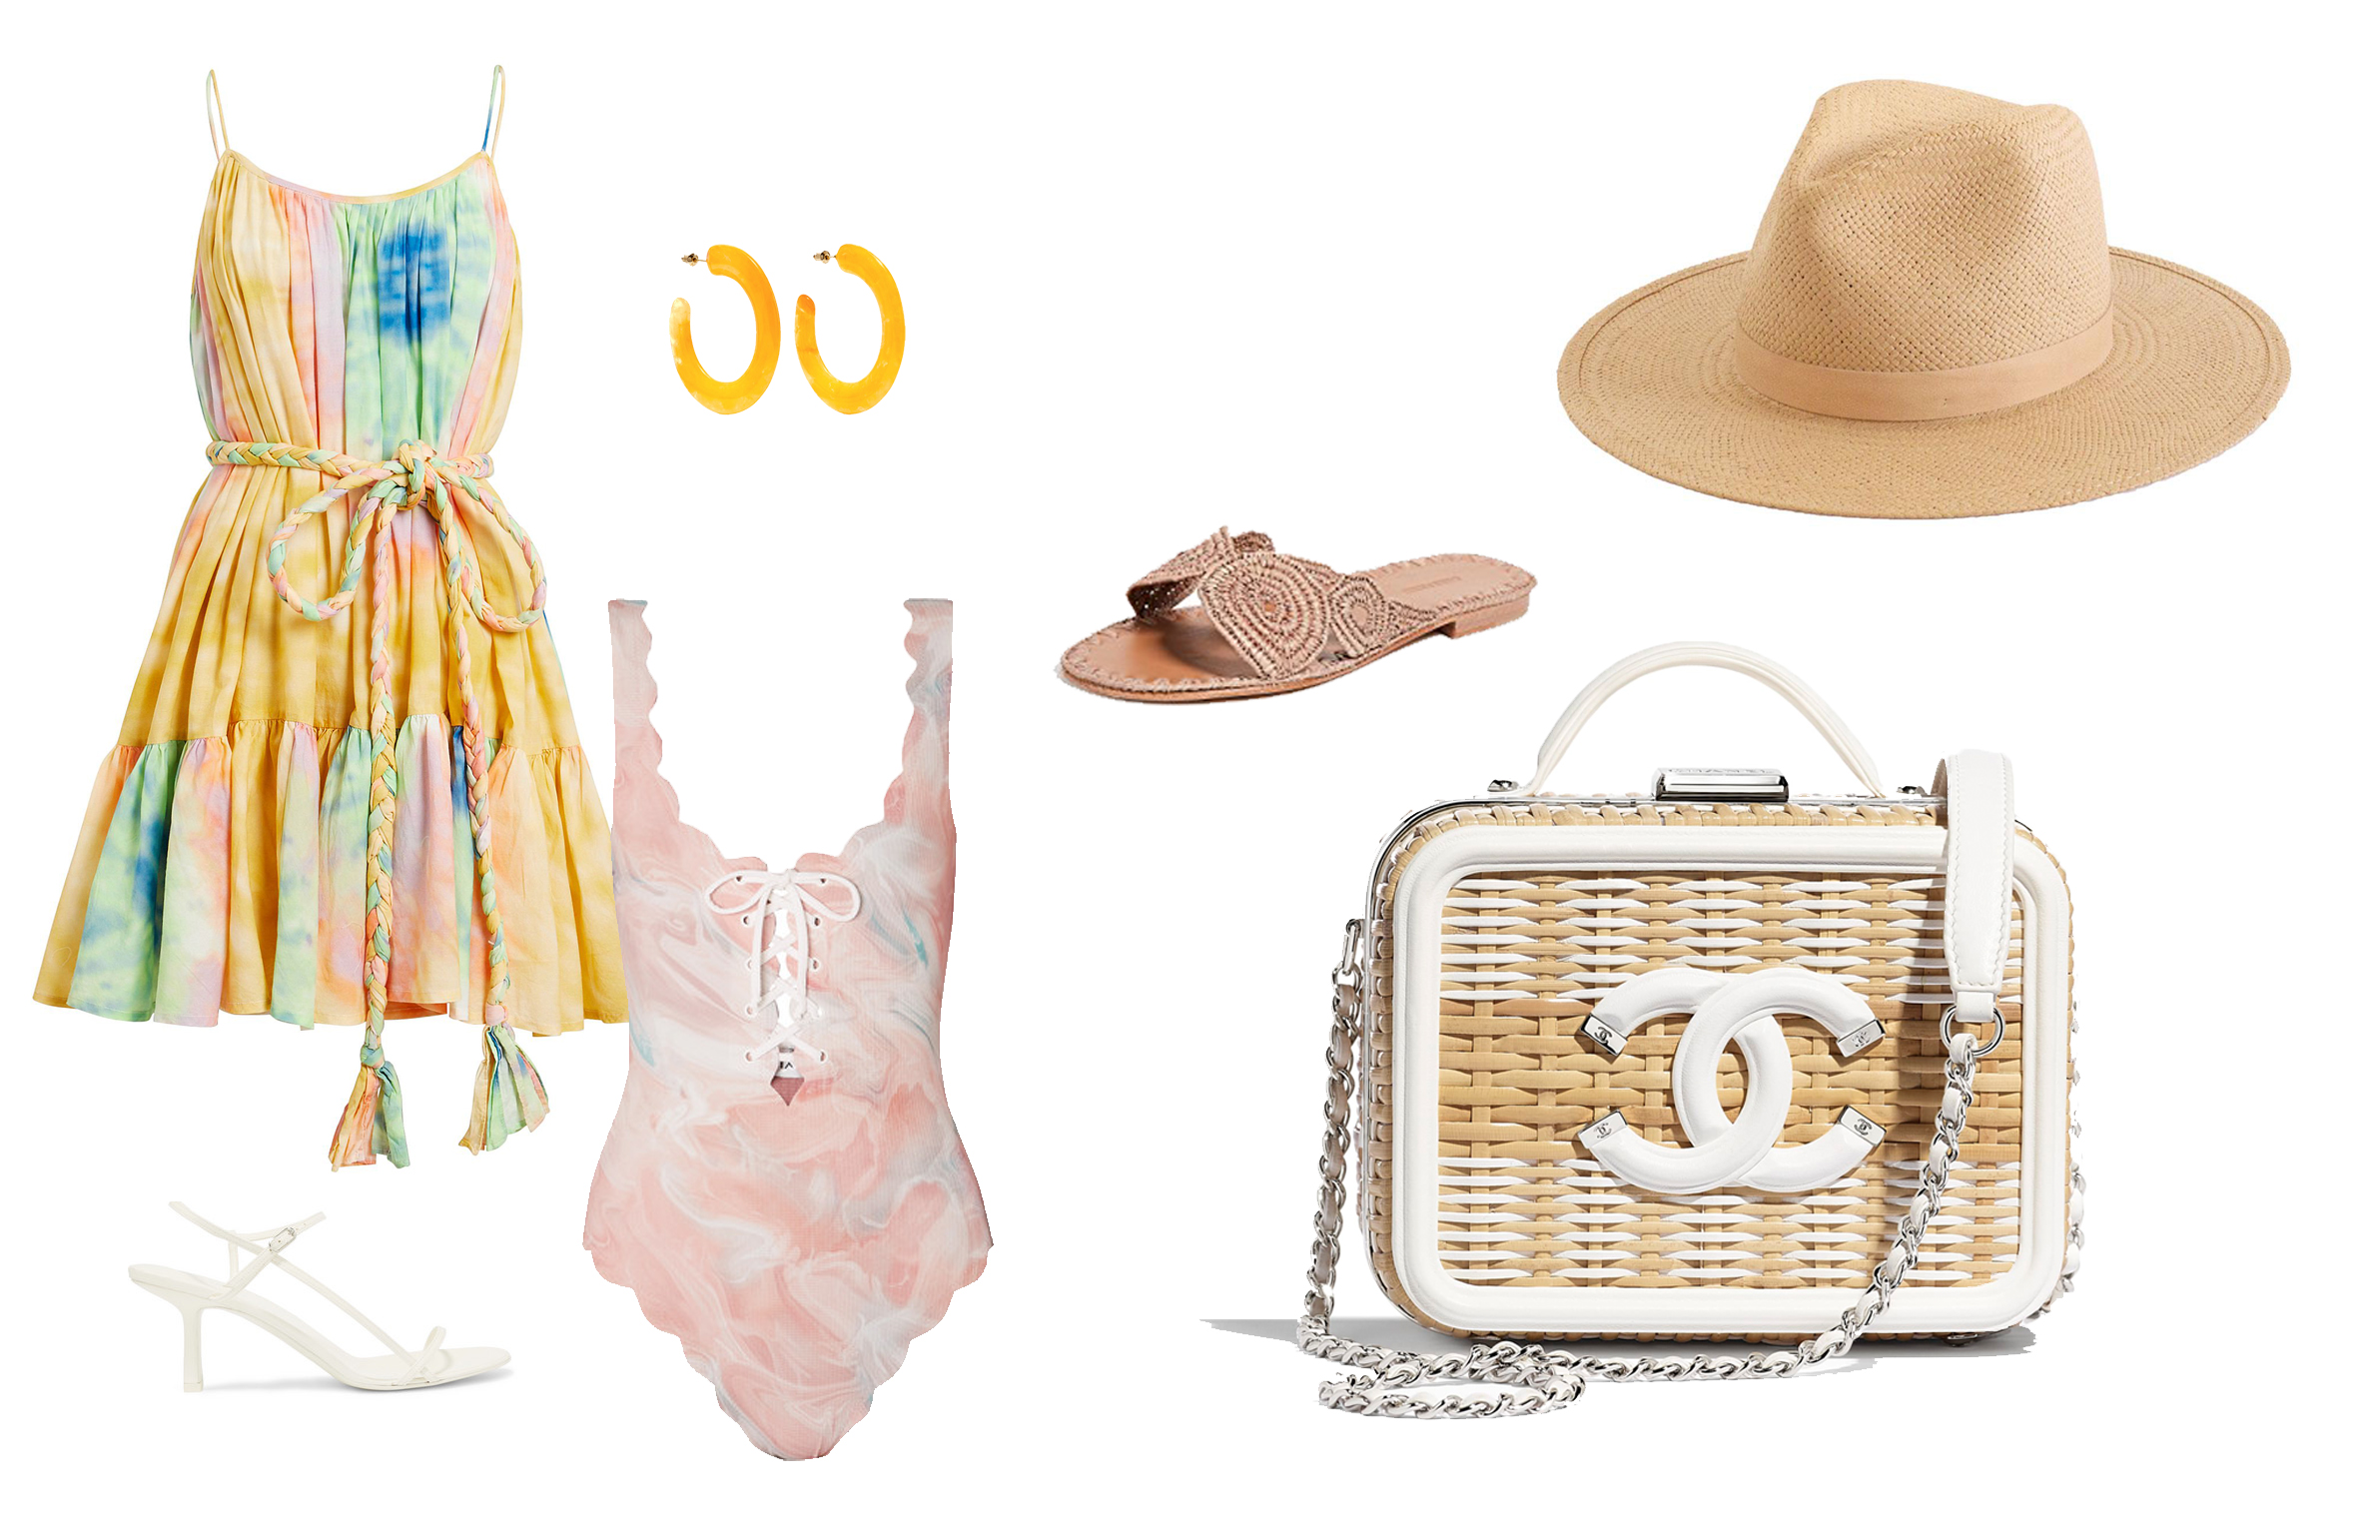 MINI DRESS  |  HAT  |  SLIDES  |  RATTAN CHANEL BAG  |  SWIMSUIT  |  EARRINGS  |  HEELS